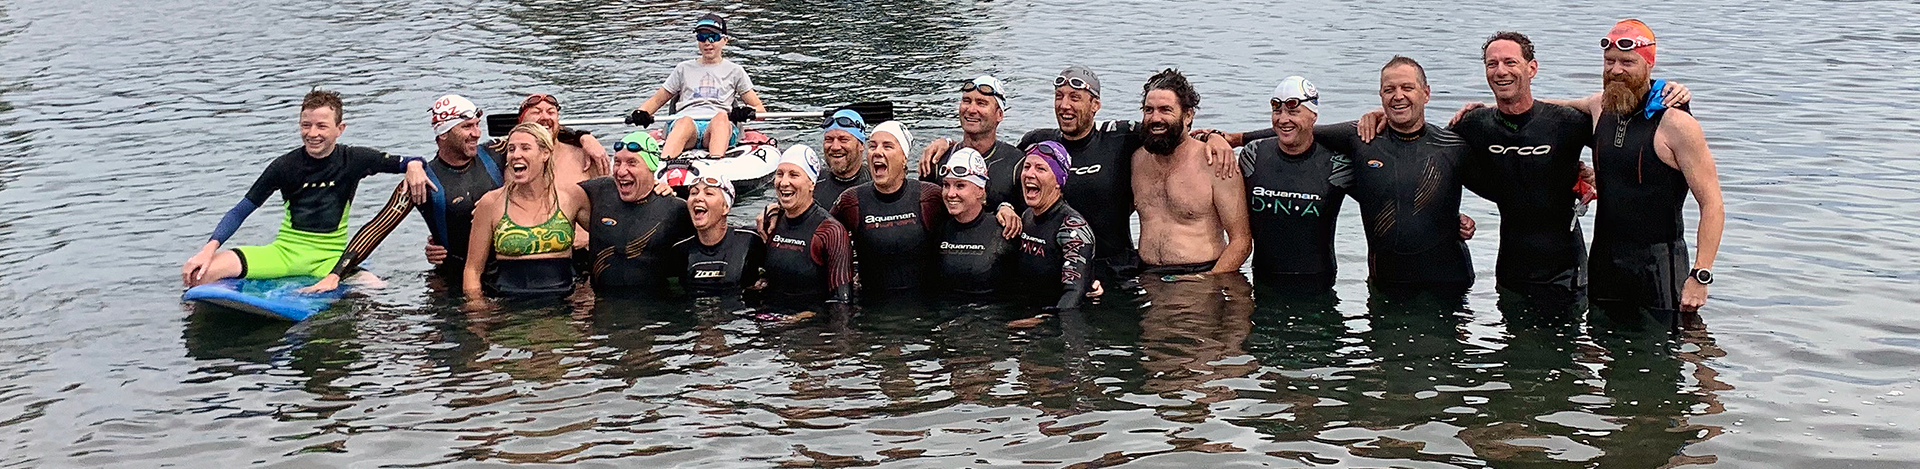 covid safety group photo ironman 2019 safety